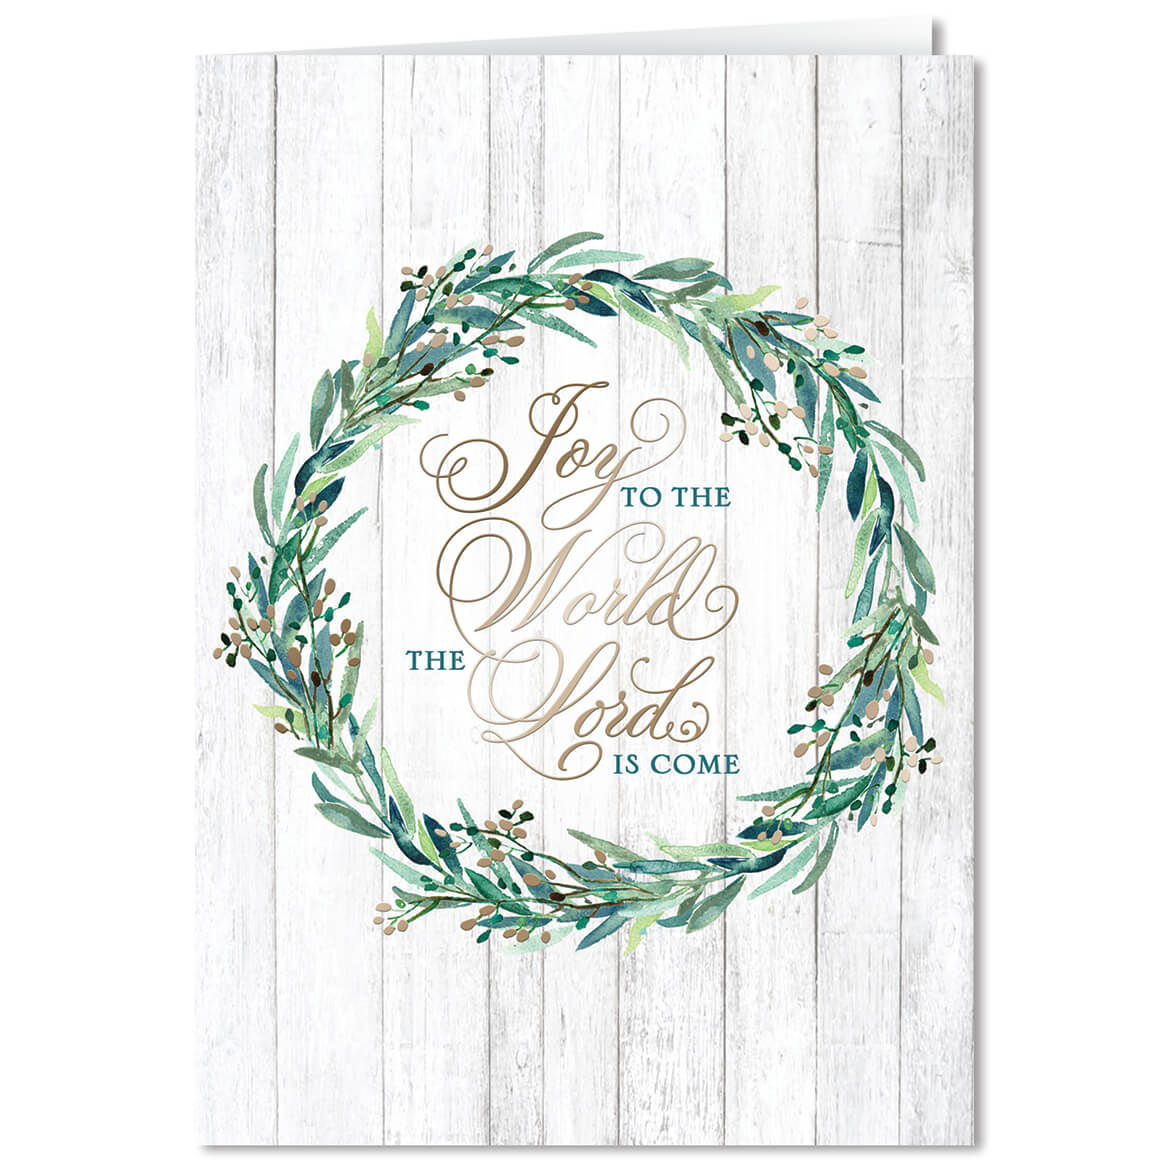 Personalized Joy to the World Christmas Card Set of 20 - Walter Drake